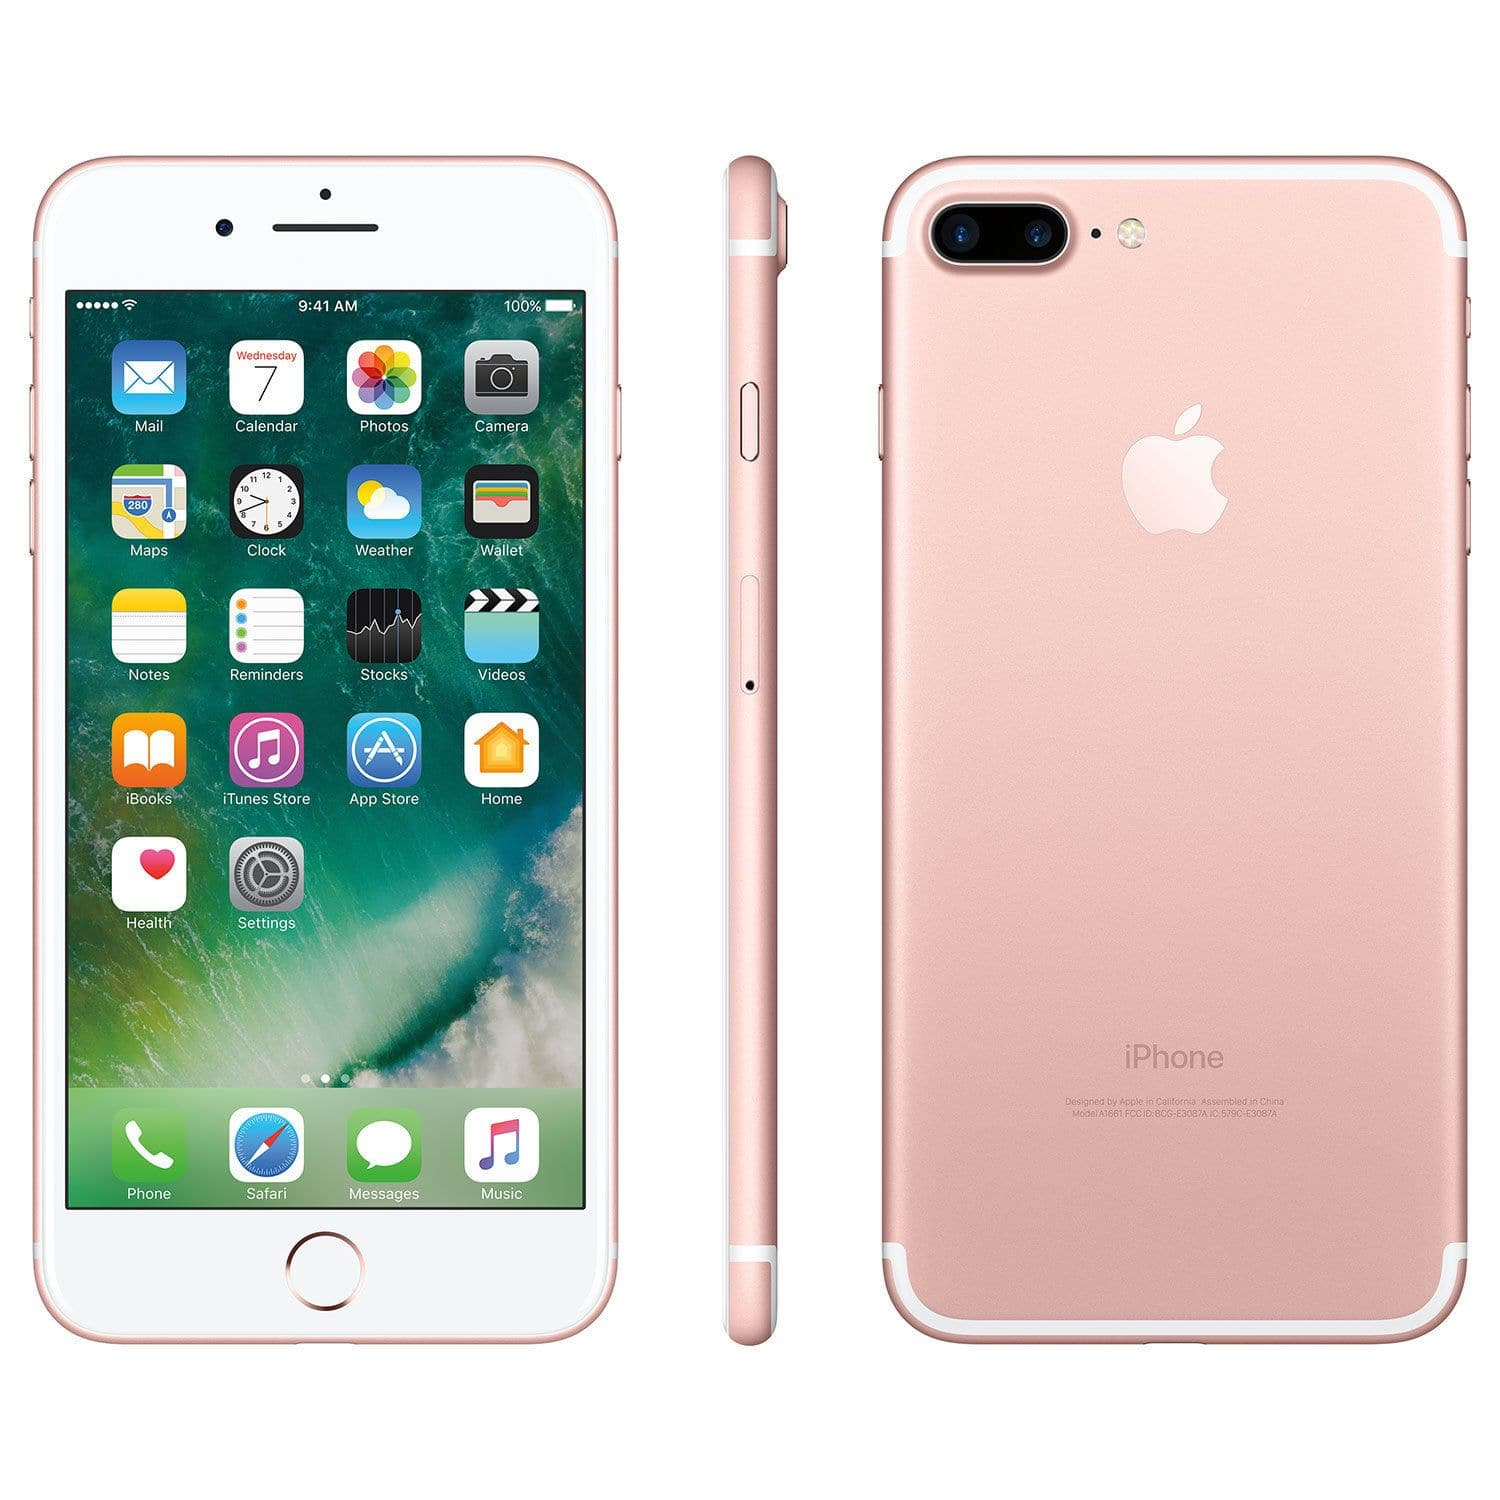 Apple iPhone 7 Plus 256GB Smartphone - Rose Gold